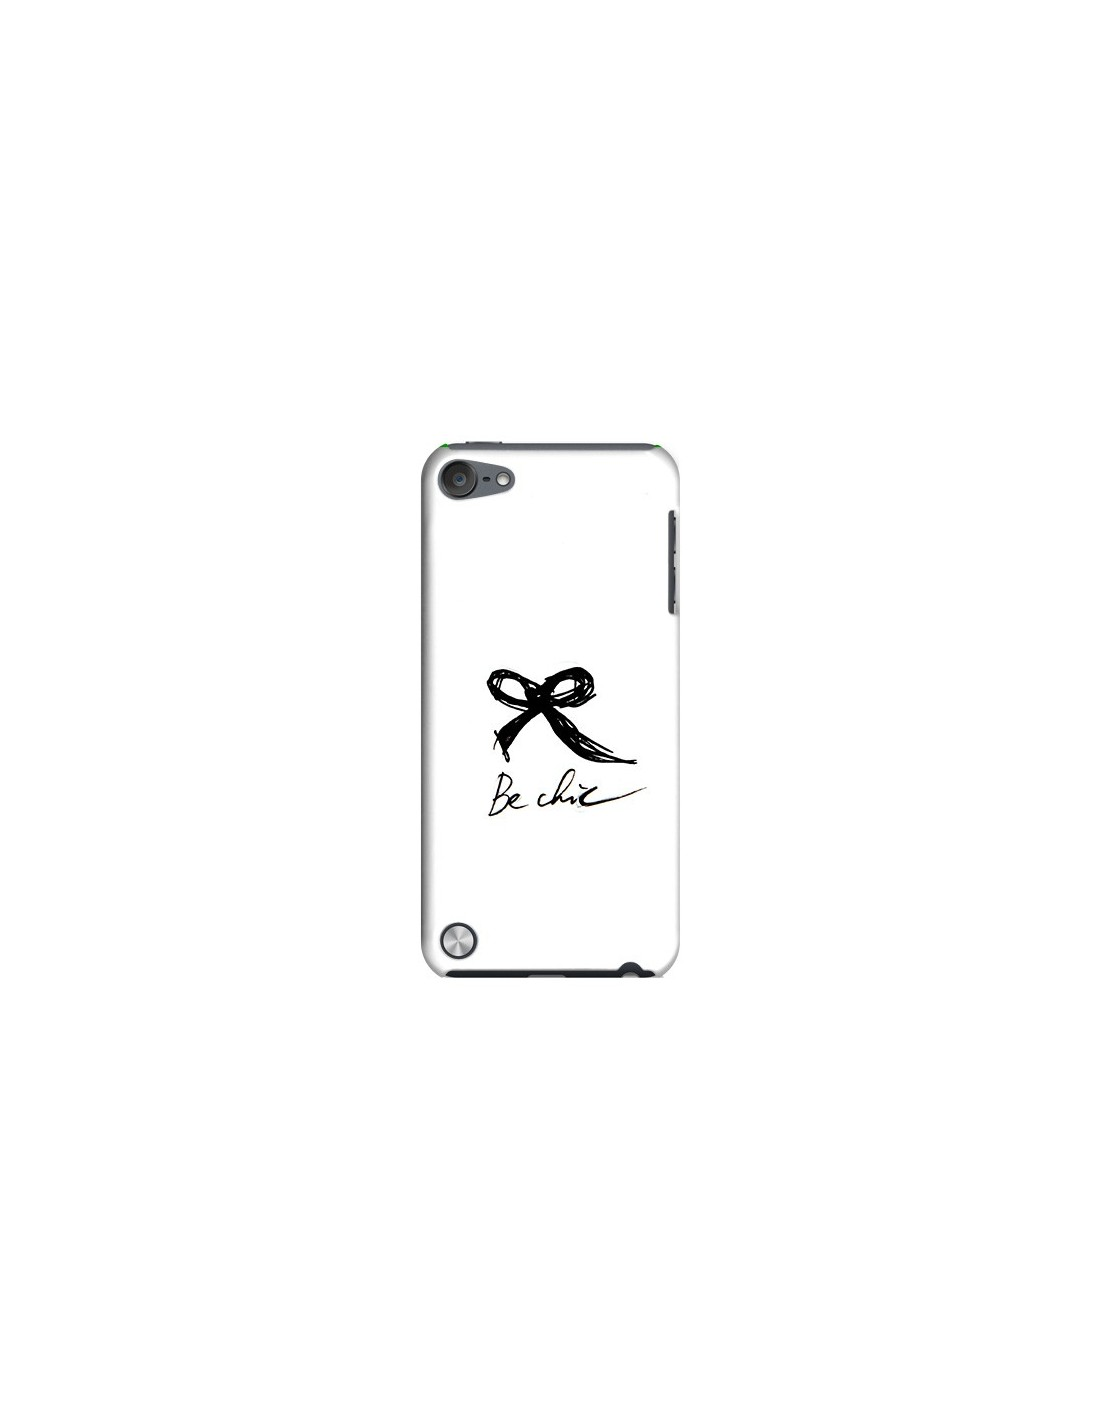 coque be chic noeud papillon pour ipod touch 5